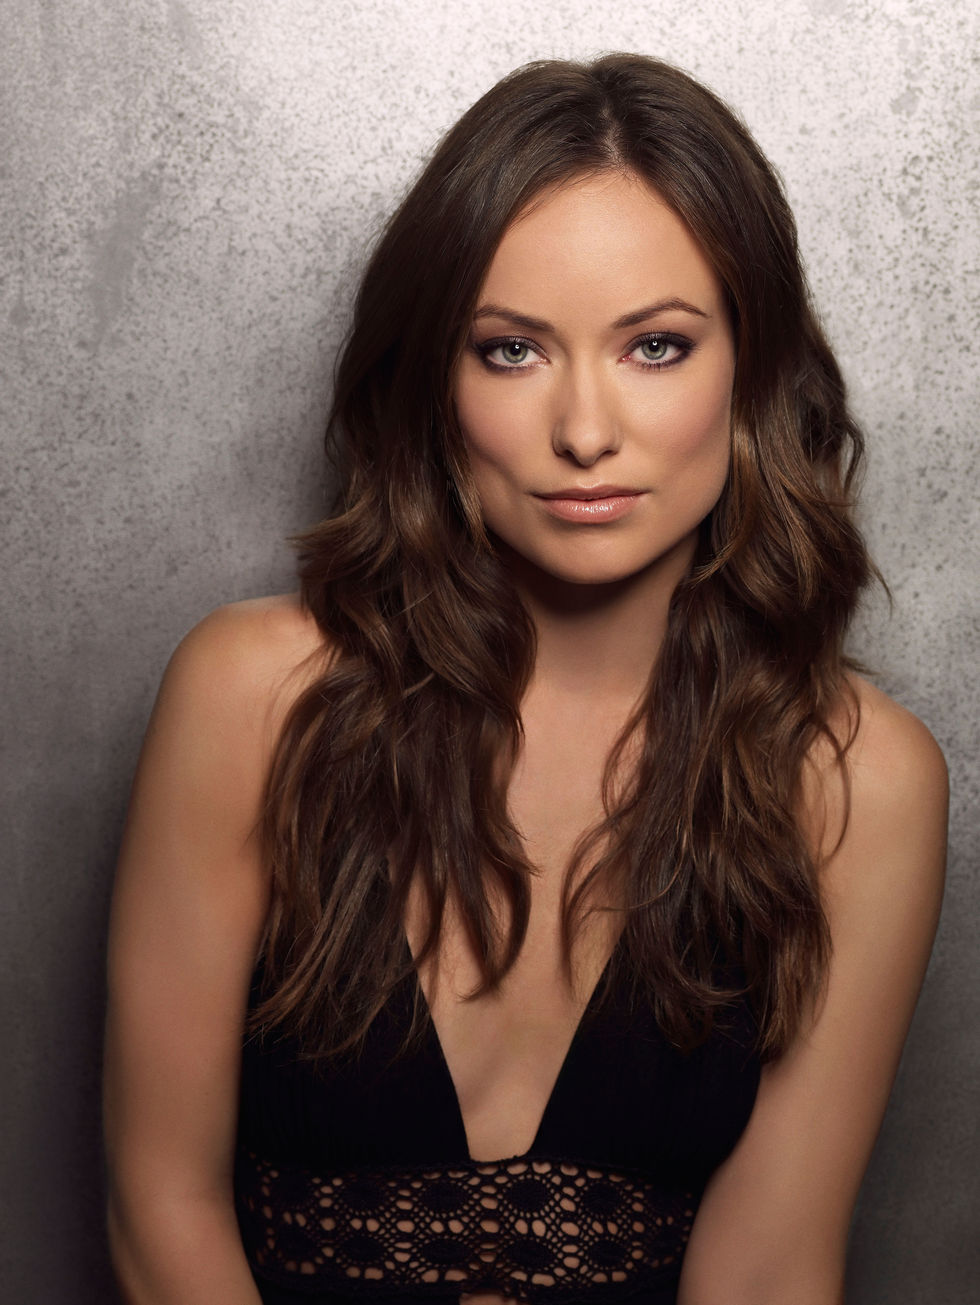 olivia-wilde-fox-image-campaign-photoshoot-uhq-01